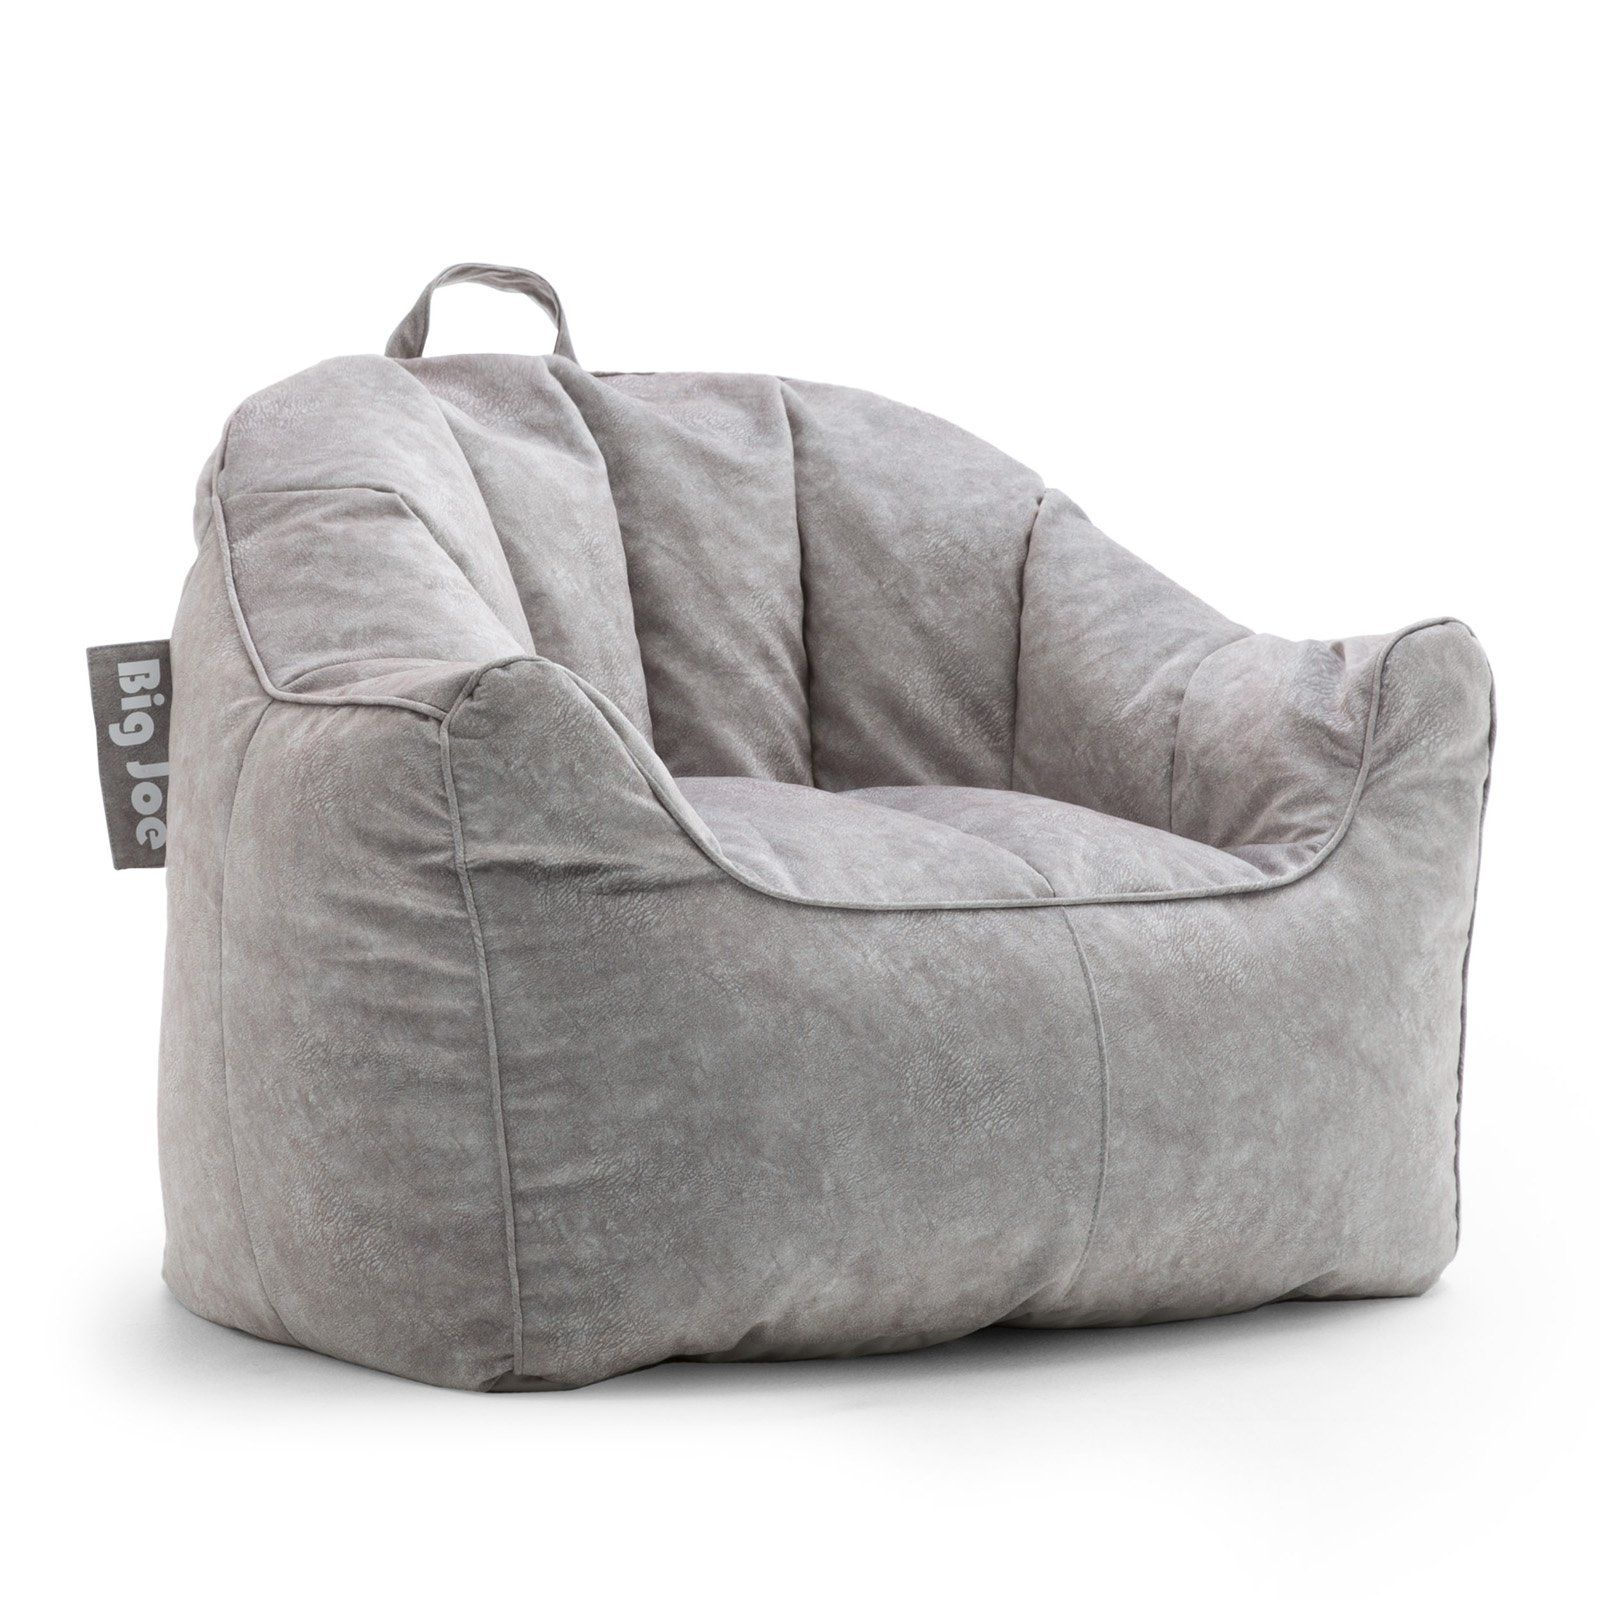 Phenomenal Big Joe Hug Bean Bag Chair Lunar Gray In 2019 Products Andrewgaddart Wooden Chair Designs For Living Room Andrewgaddartcom